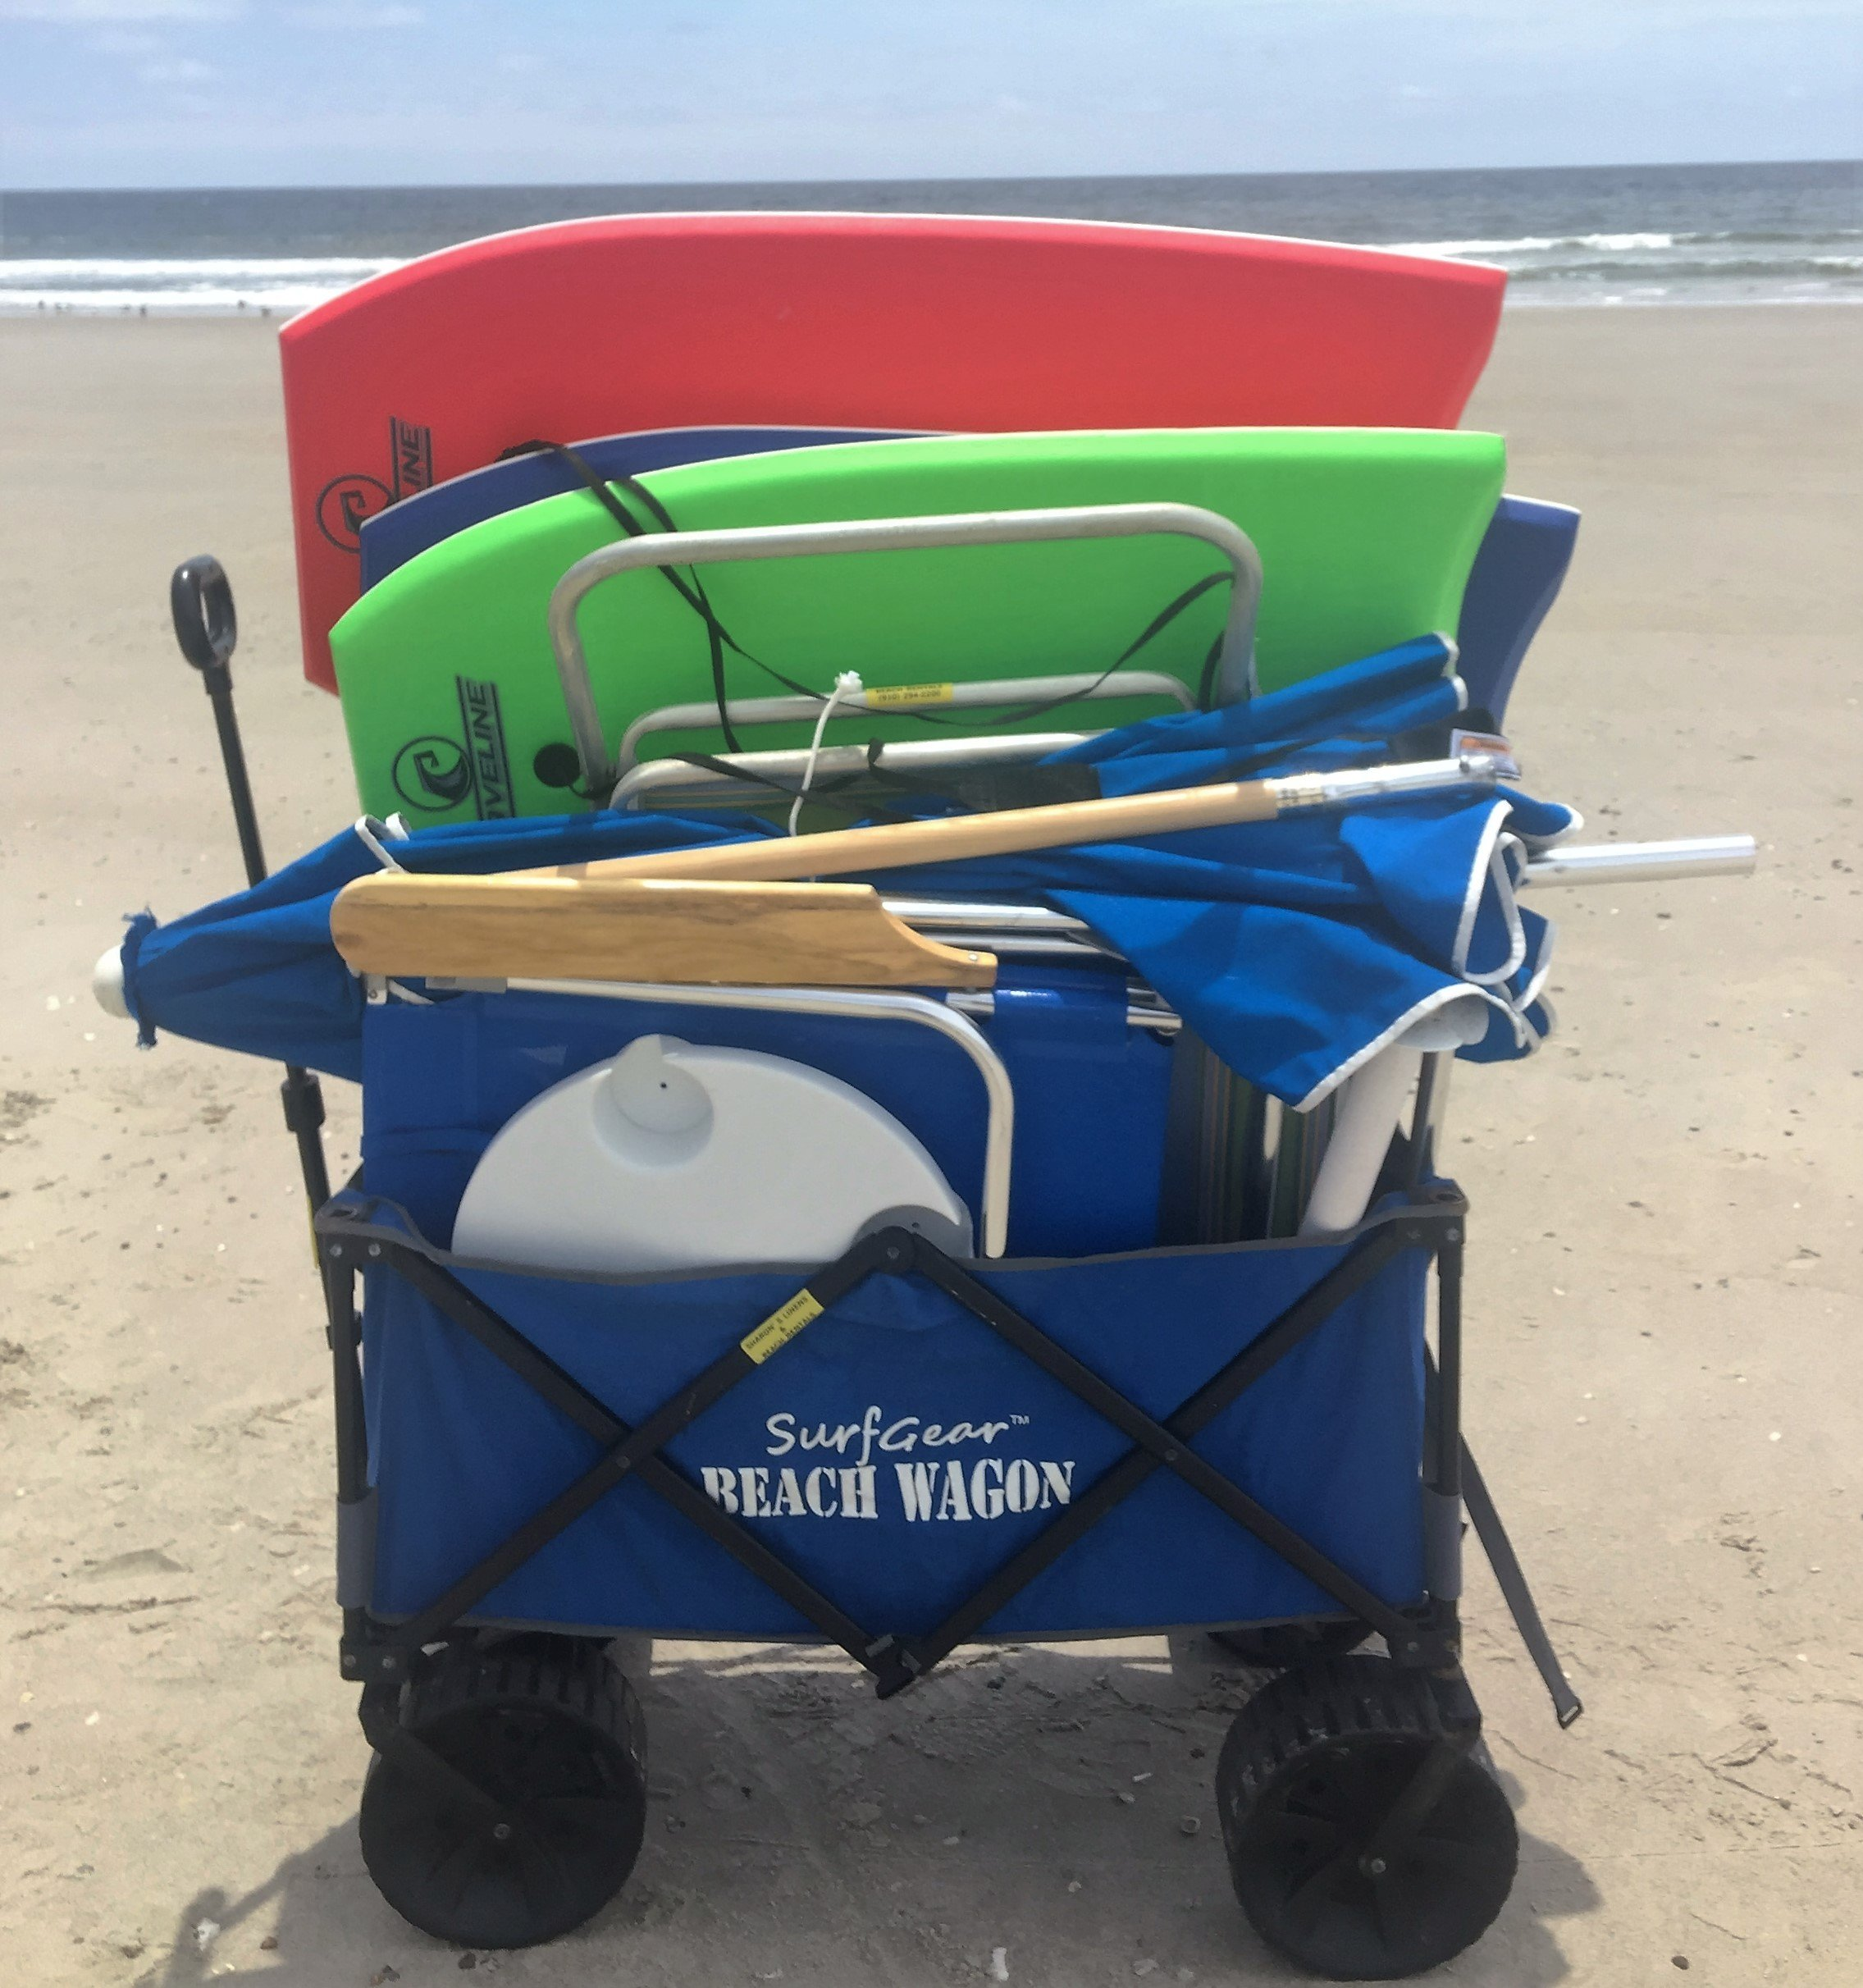 An image of the Beach Wagon carrying umbrellas, beach chairs and boogie boards